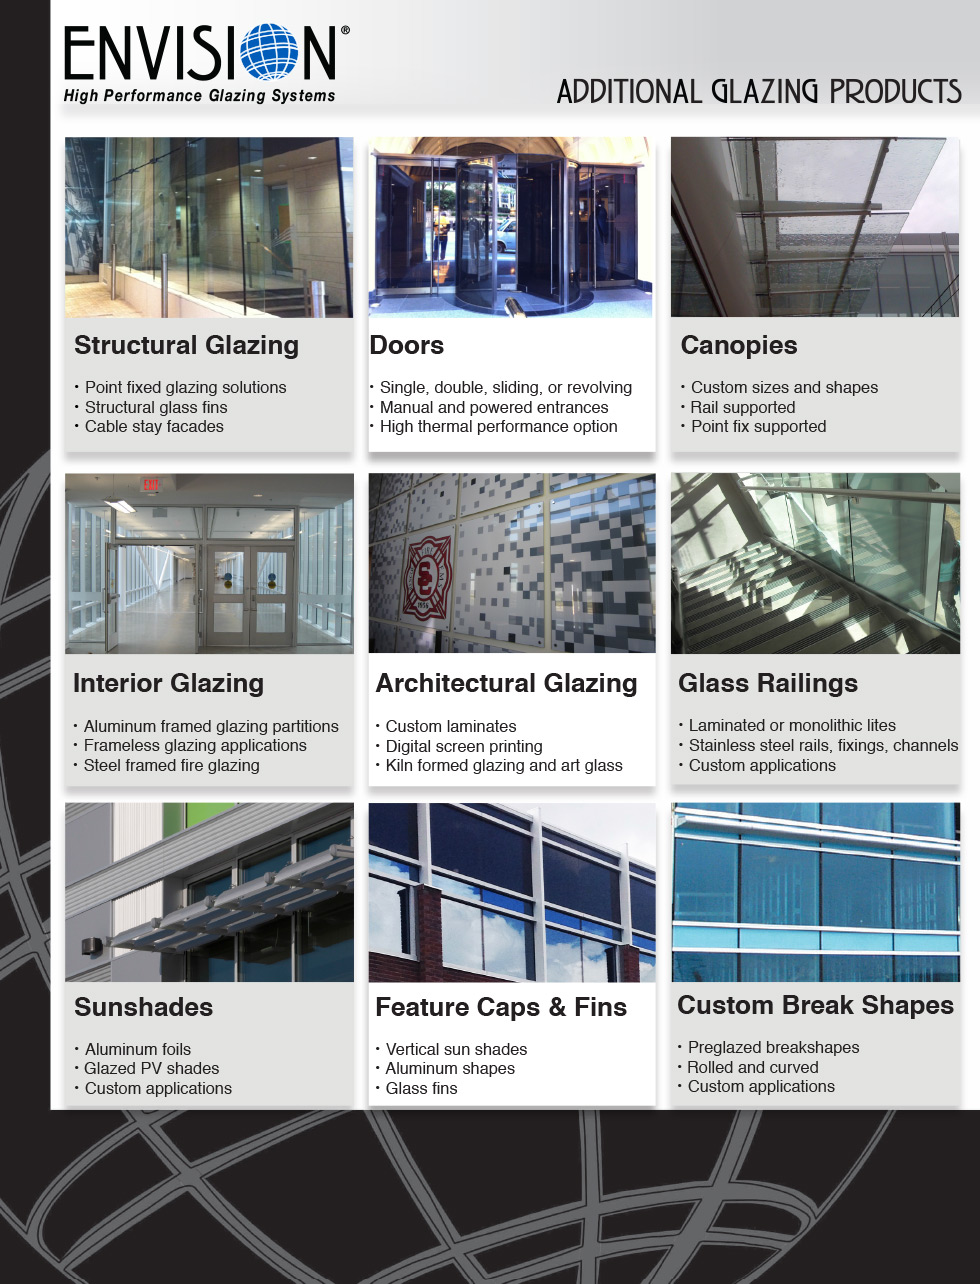 ENVISION - Products - Additional Glazing